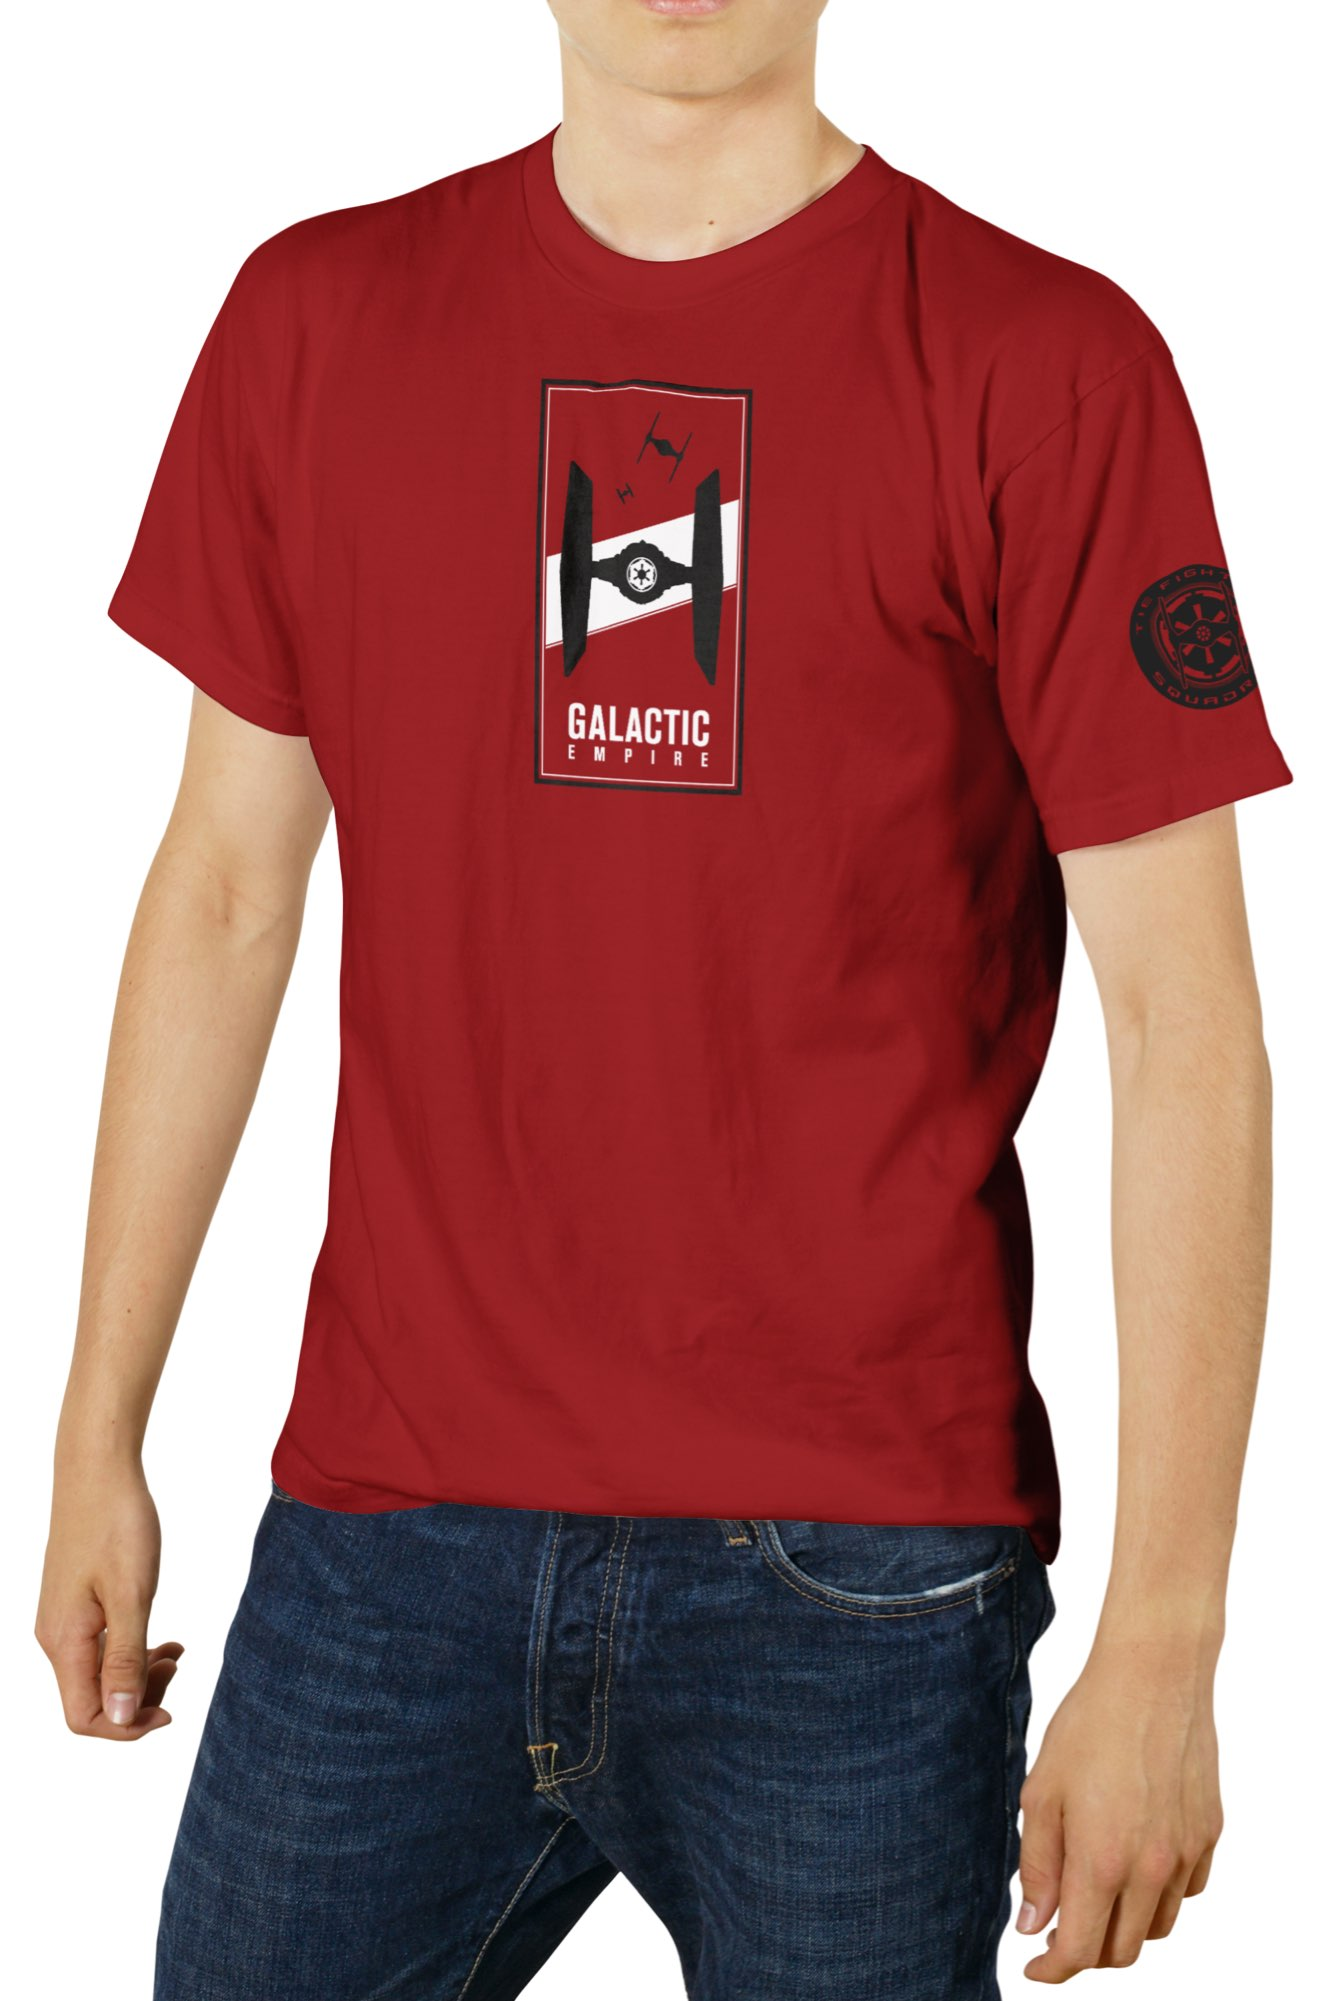 GALACTIC EMPIRE CAMISETA ROJA CHICO T-S STAR WARS